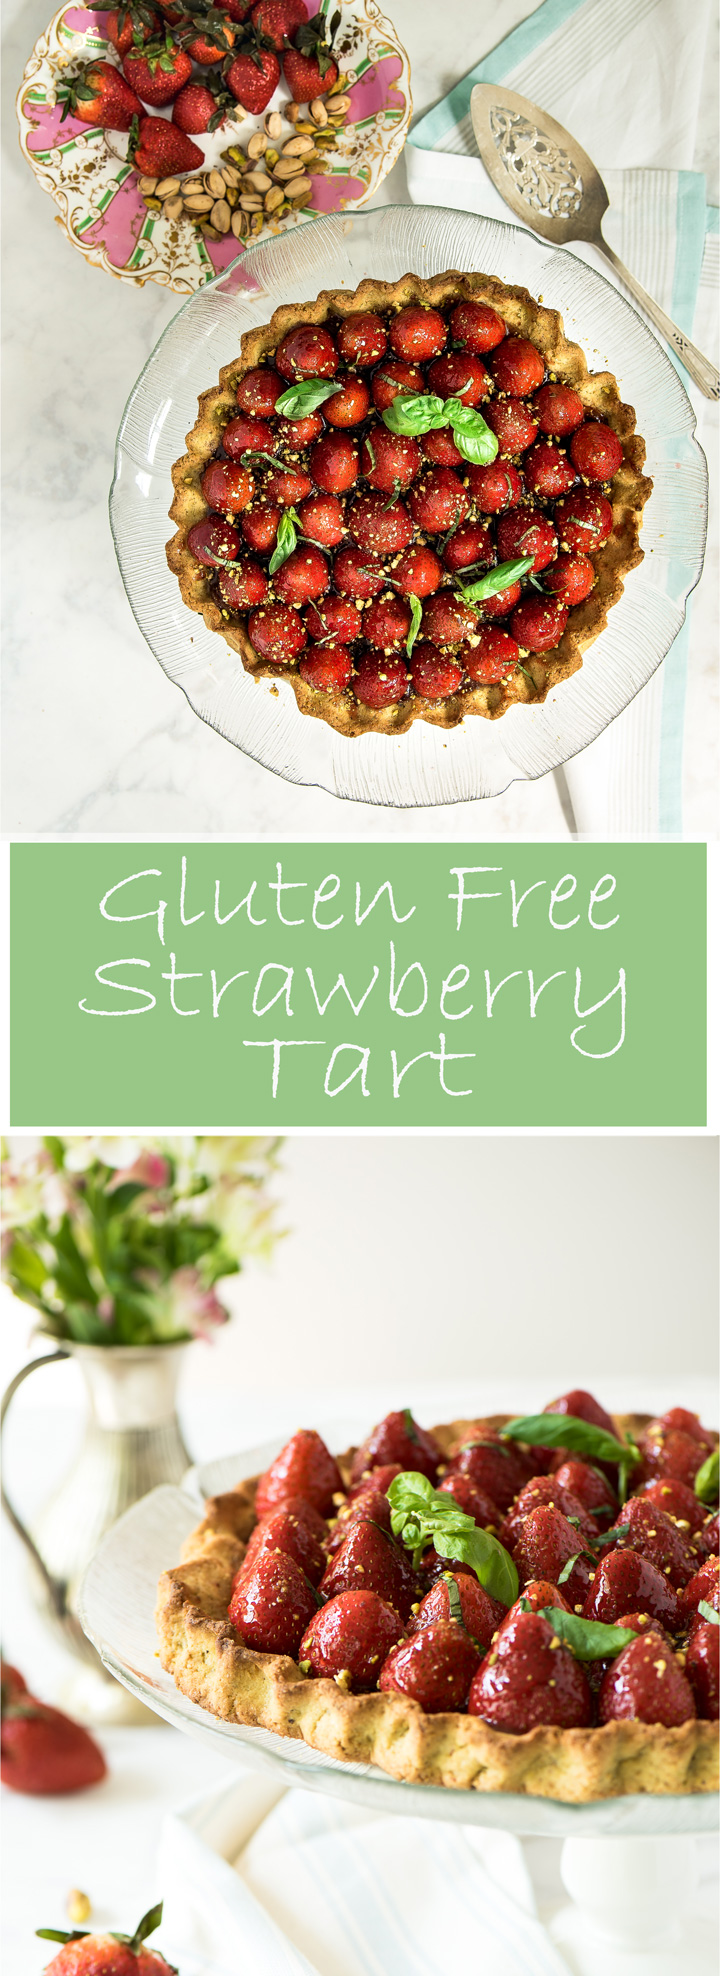 Gluten free Strawberry Tart with Pistachio Crust. Gluten free strawberry tart recipe. A tender gluten free pâte sucurée dough made with ground pistachios and white rice flour. The tart is filled with strawberry rhubarb jam and fresh strawberries. A simple but elegant strawberry tart.